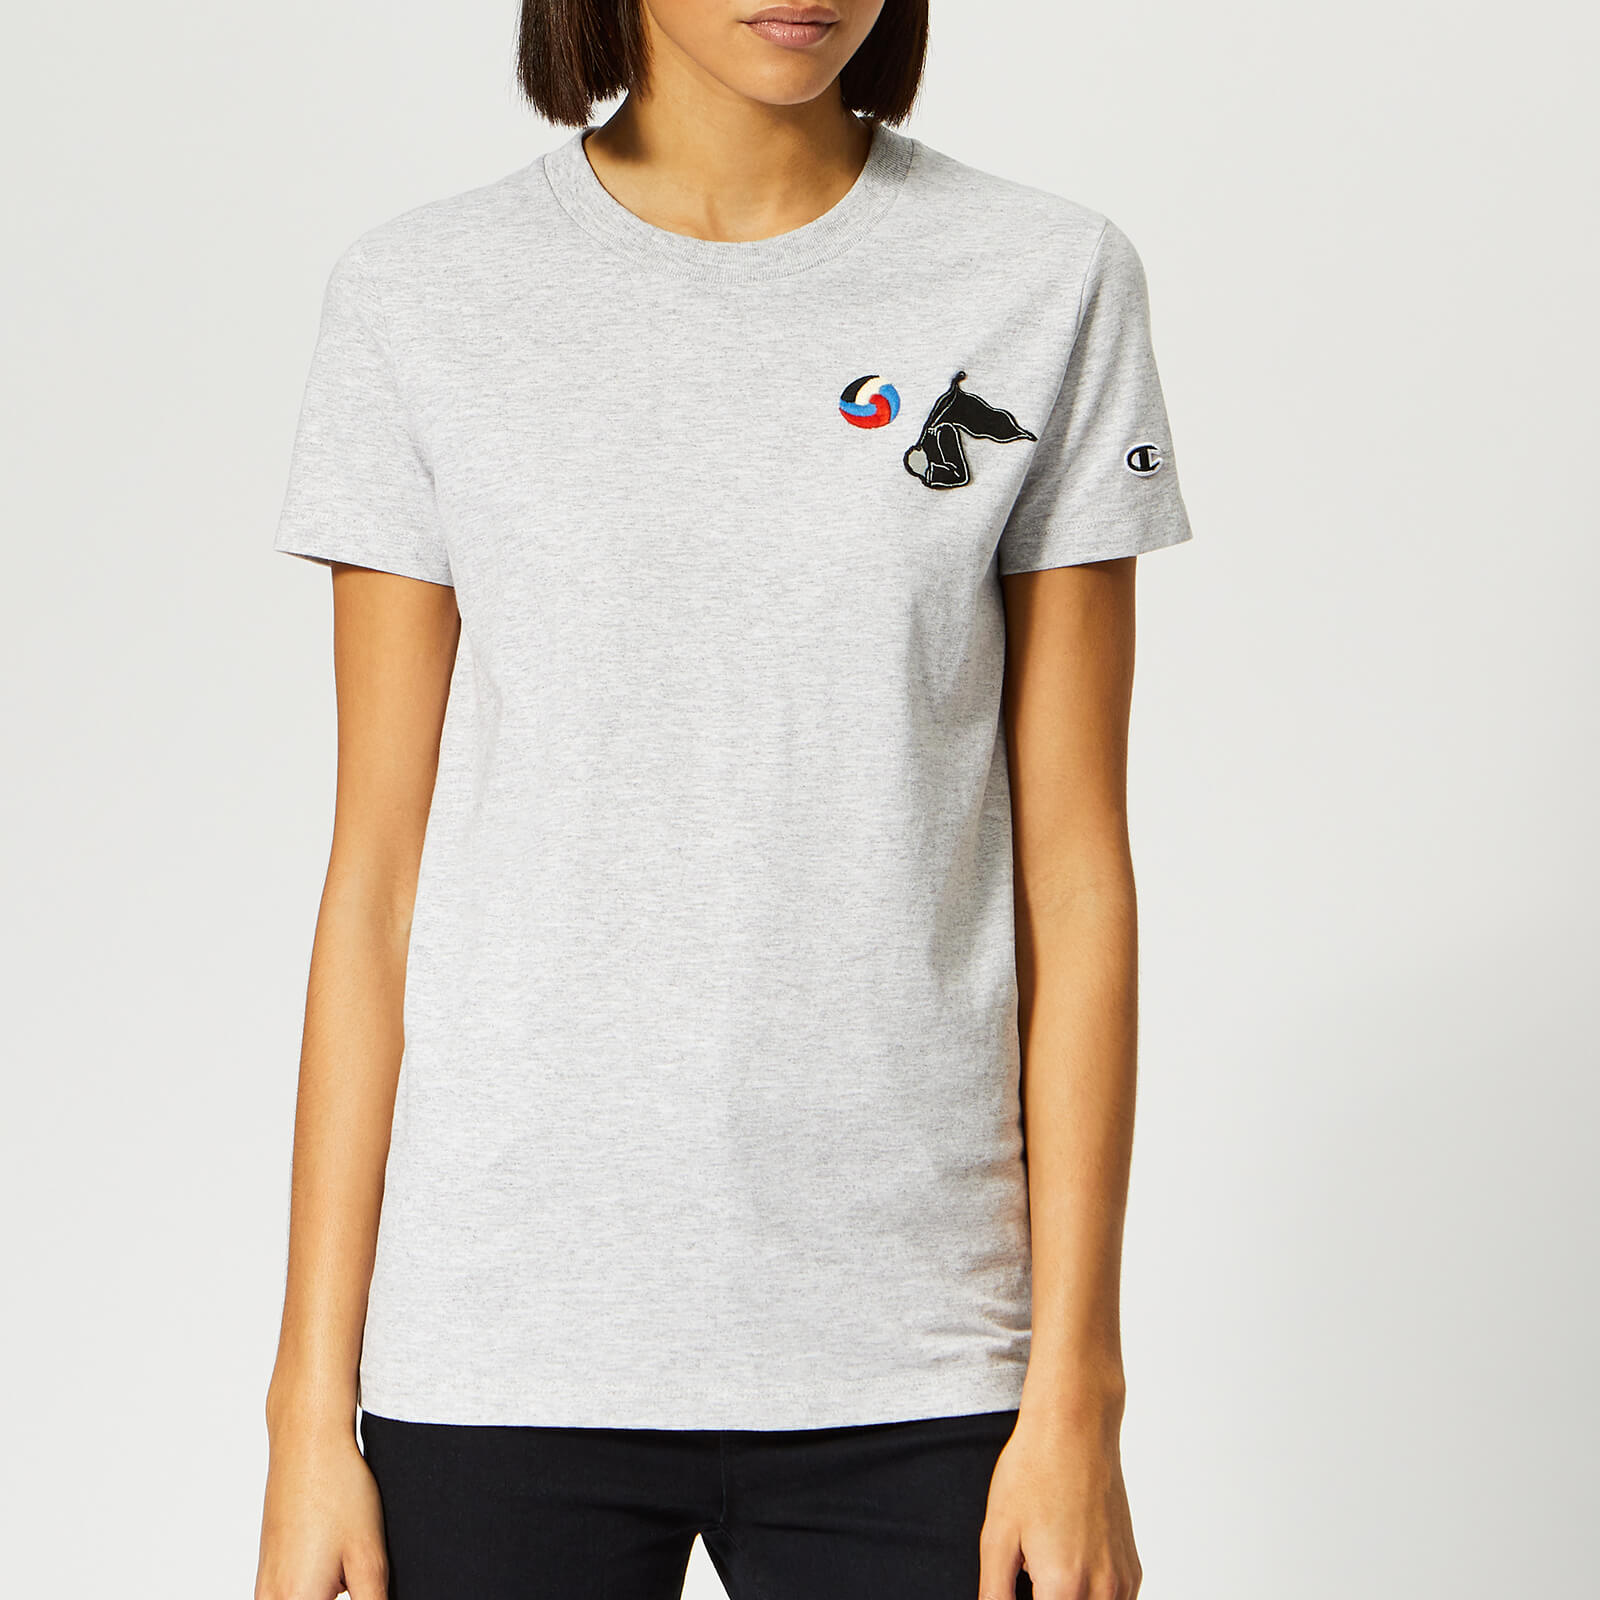 1c2147130 Champion X WOOD WOOD Women's Lyn Crew Neck T-Shirt - Grey - Free UK  Delivery over £50